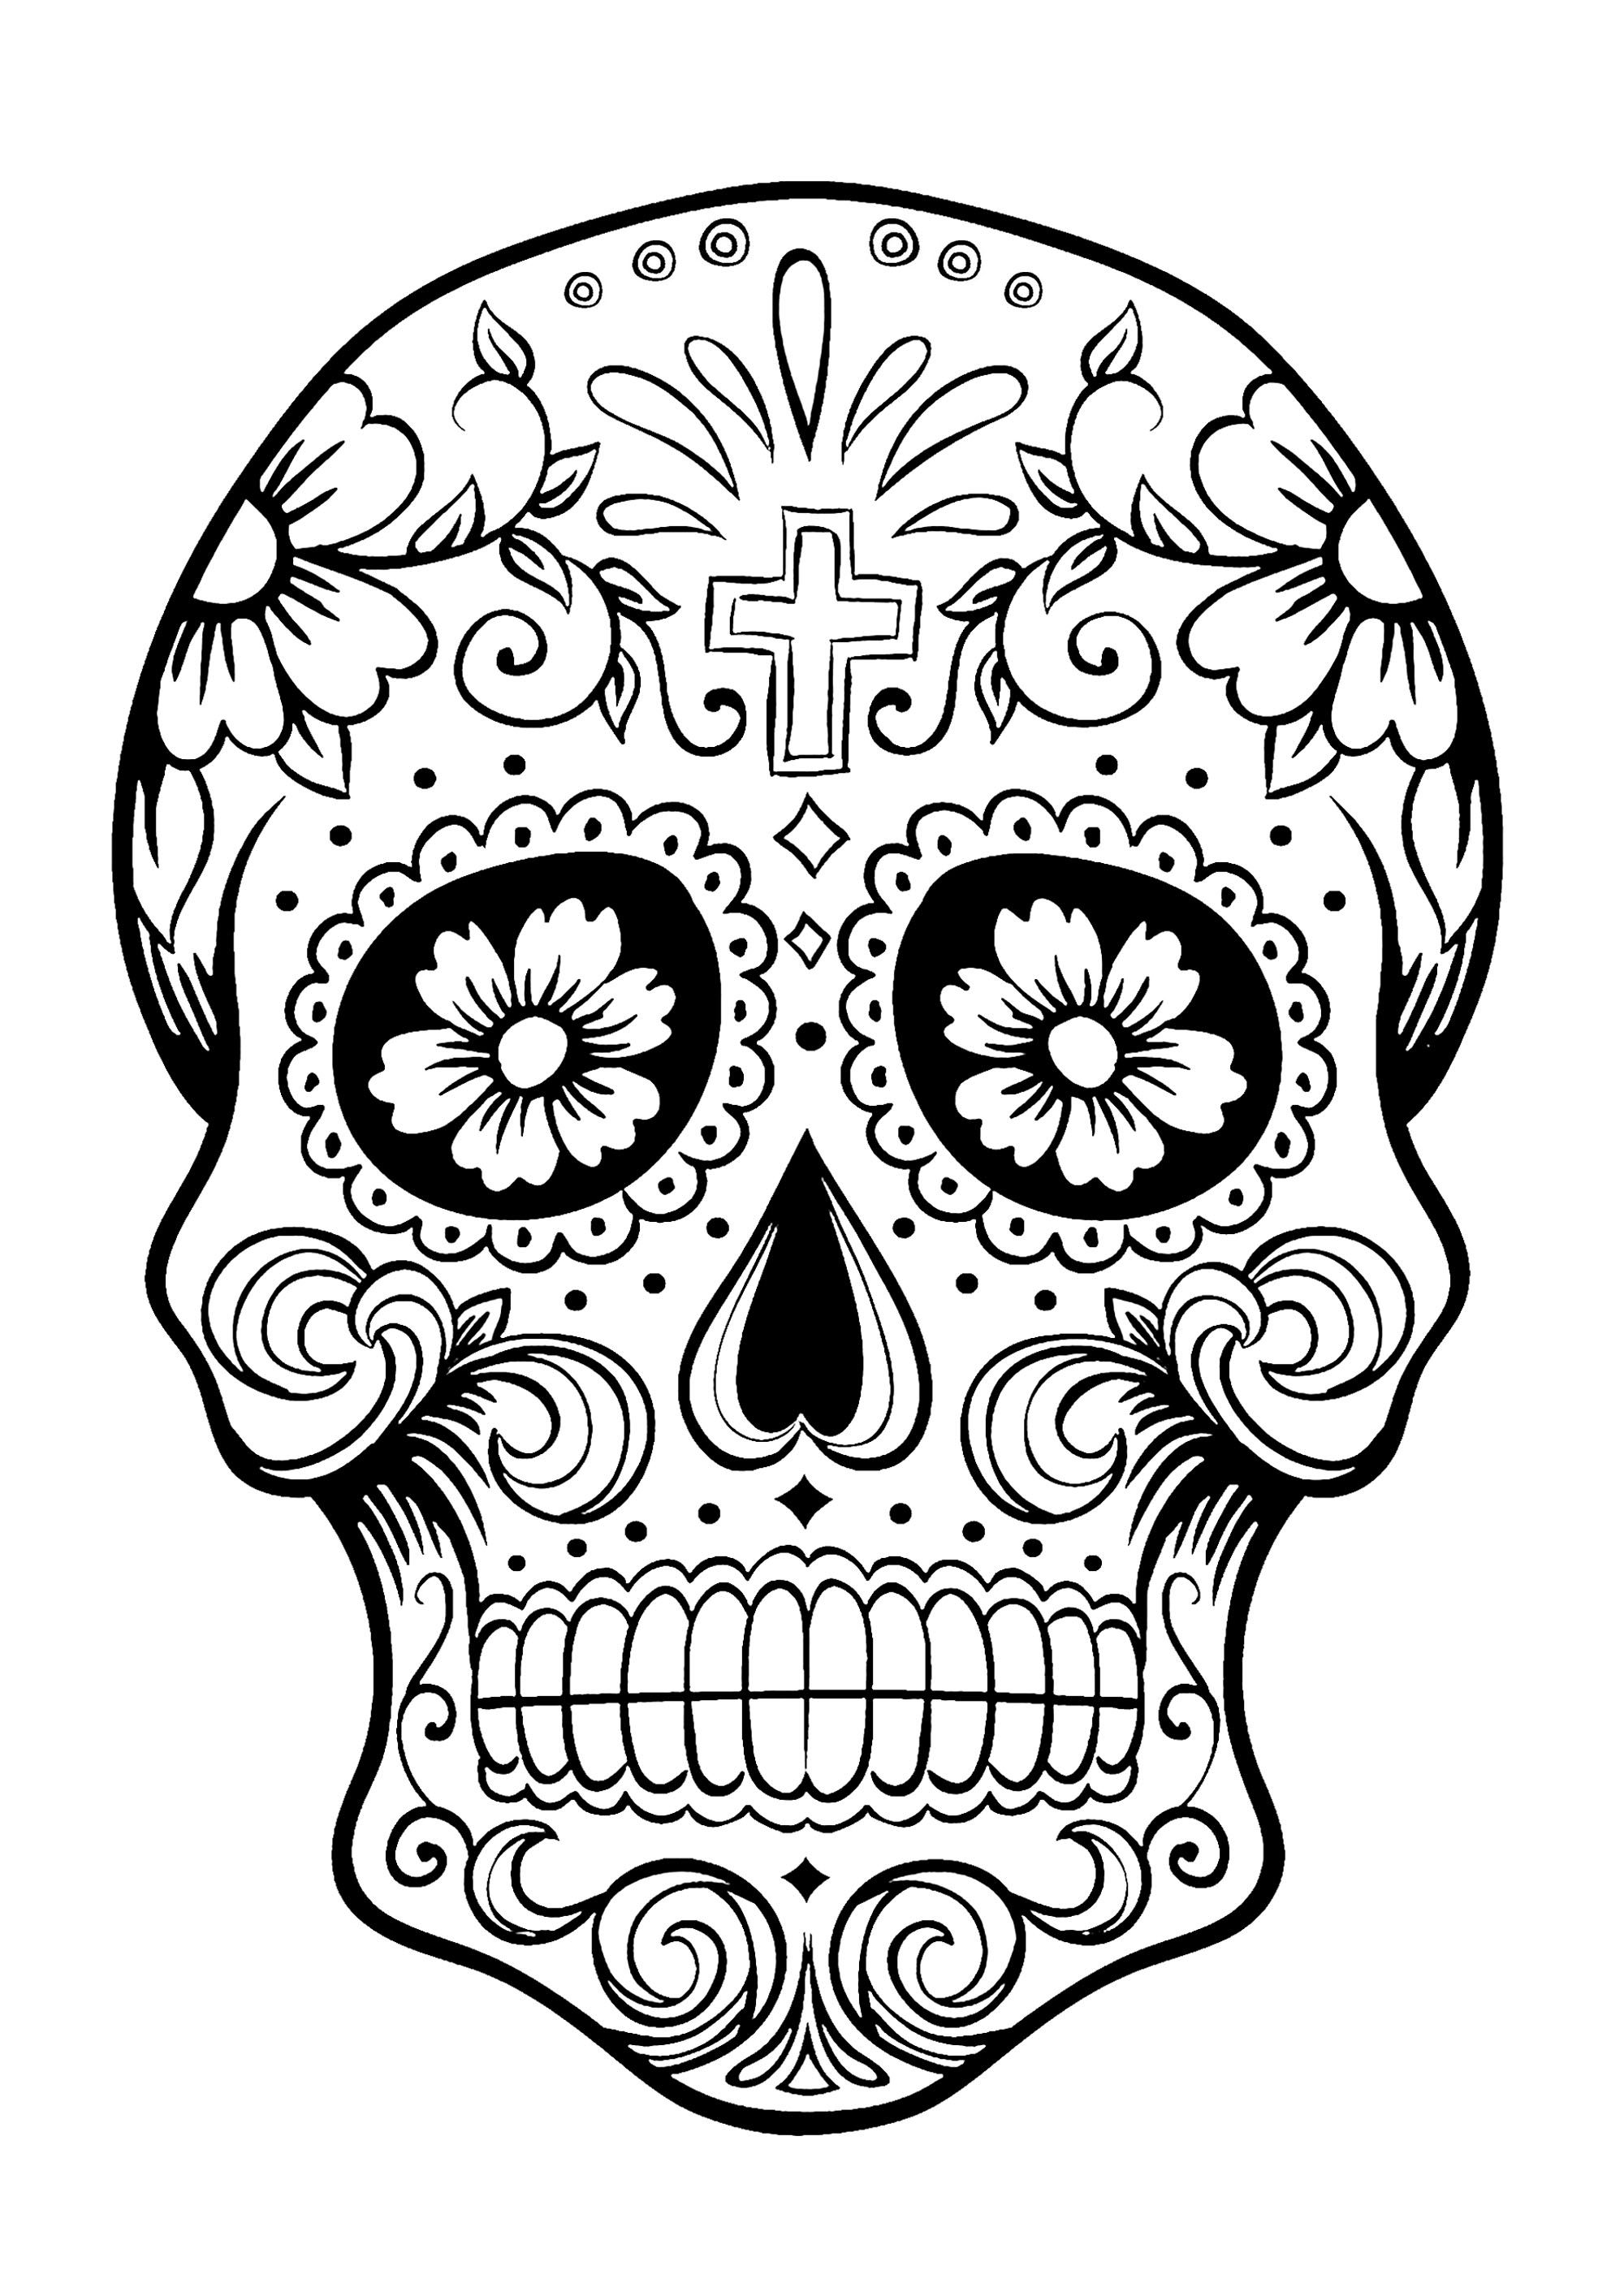 El Dia De Los Muertos 3 - El Dia De Los Muertos Coloring Pages For